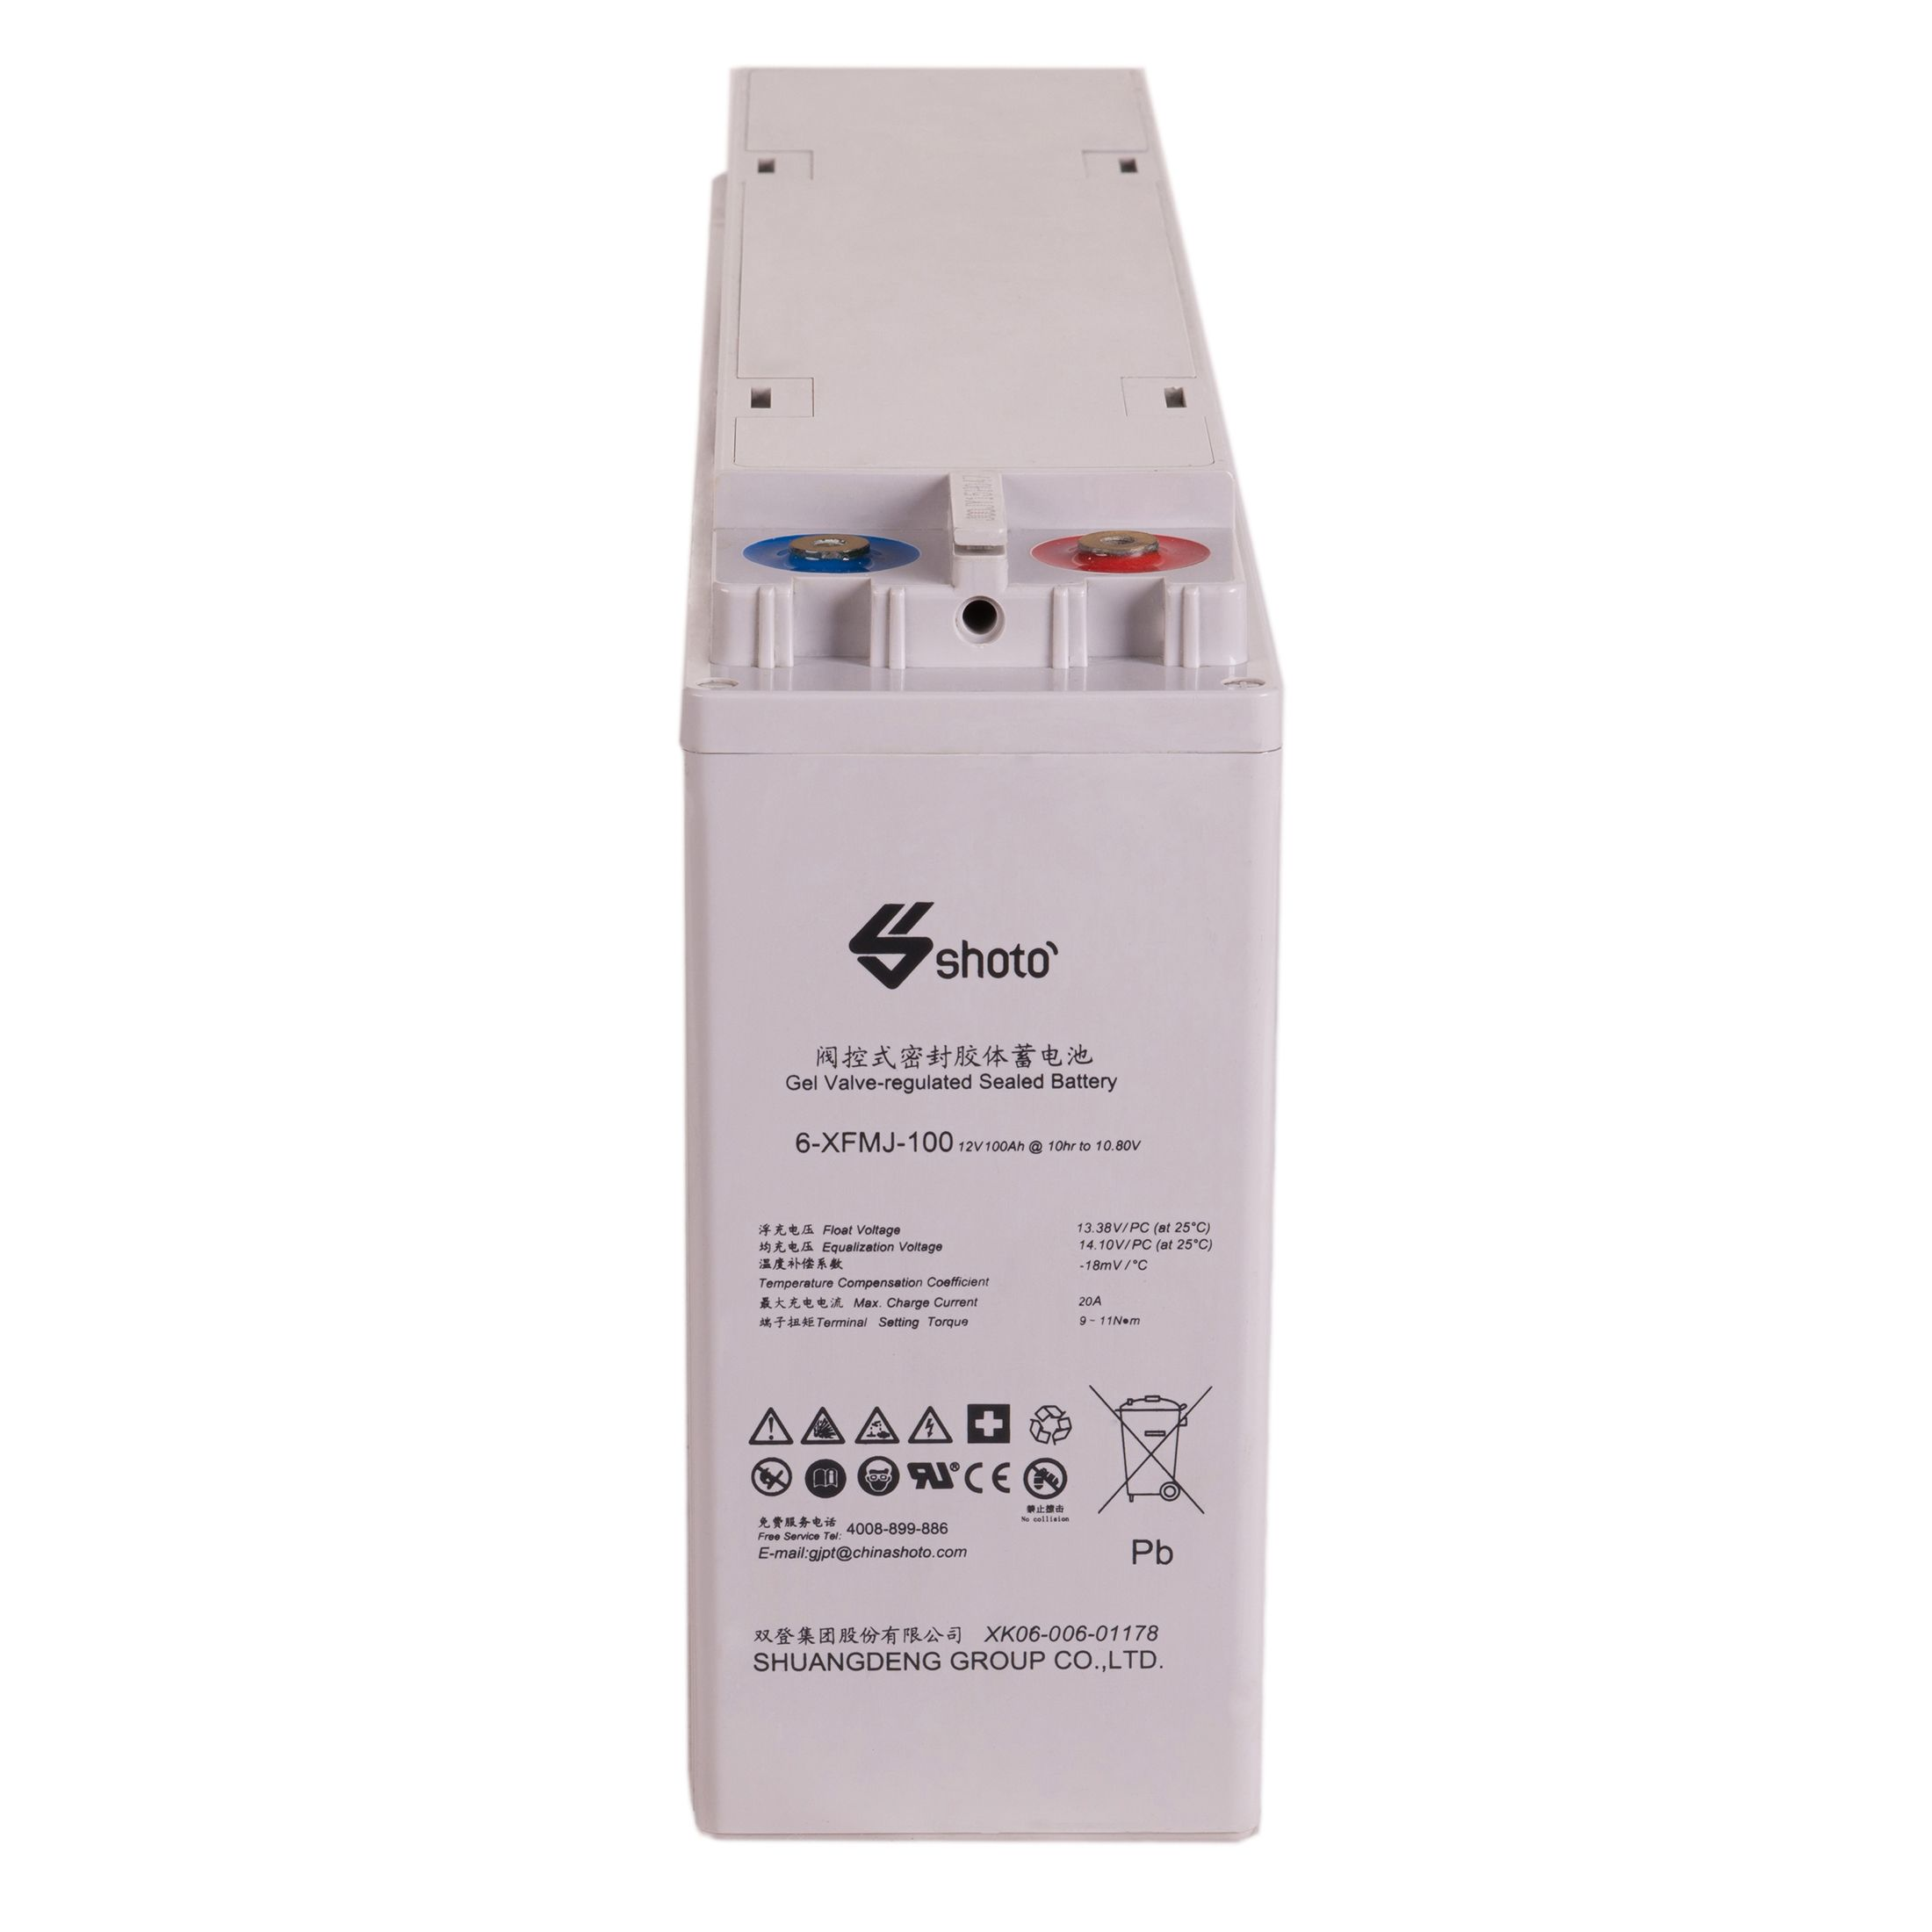 Shoto 6-XFMJ 12V 100Ah Gel Battery